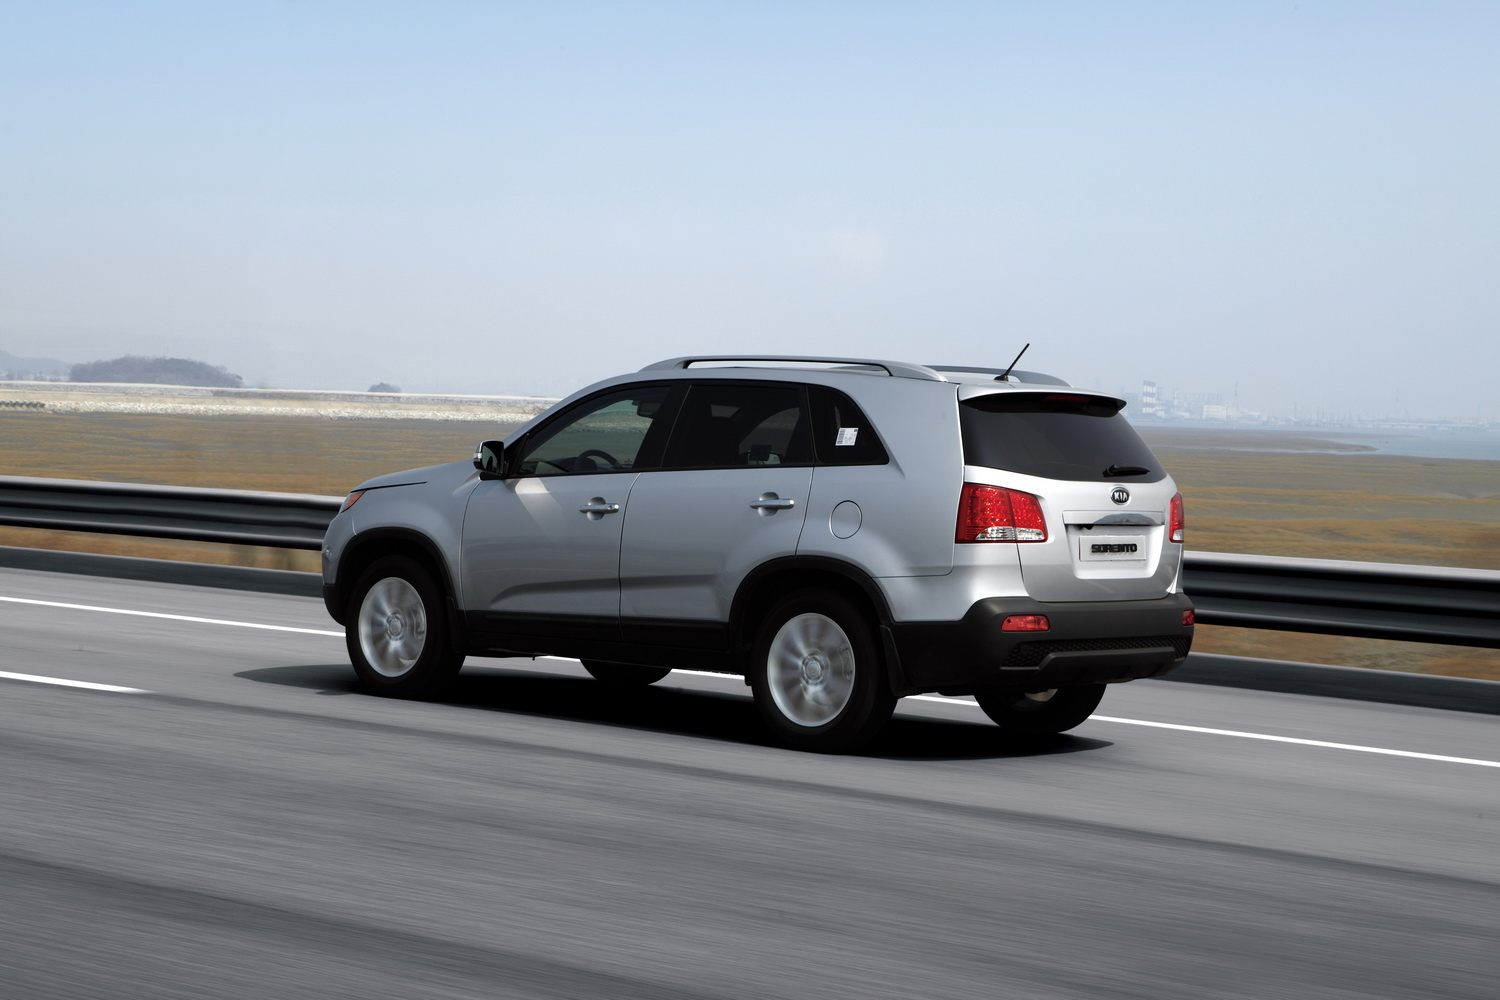 kia sorento 2010 img 4 it s your auto world new cars auto news reviews photos videos. Black Bedroom Furniture Sets. Home Design Ideas